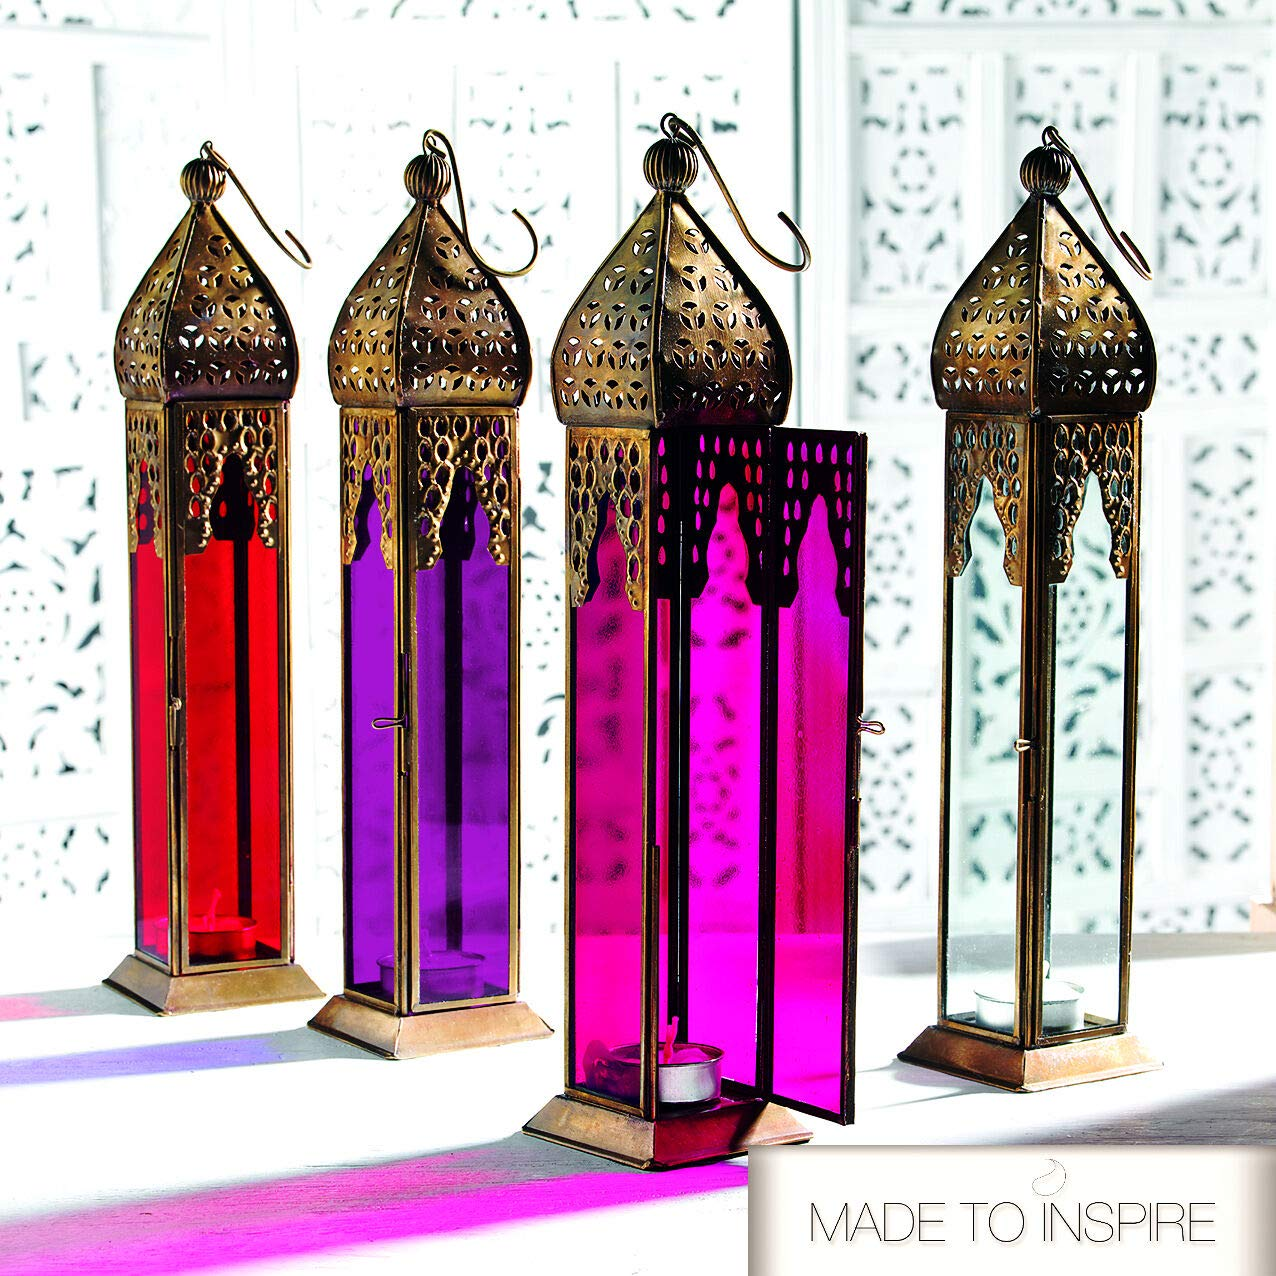 Desk Candle Tea Light Holders for Wedding Decorations Red Premium Authentic Moroccan Lanterns Lampshade Style Large Classic Vintage Turkish Indoor Garden Plain Glass Lantern Hanging